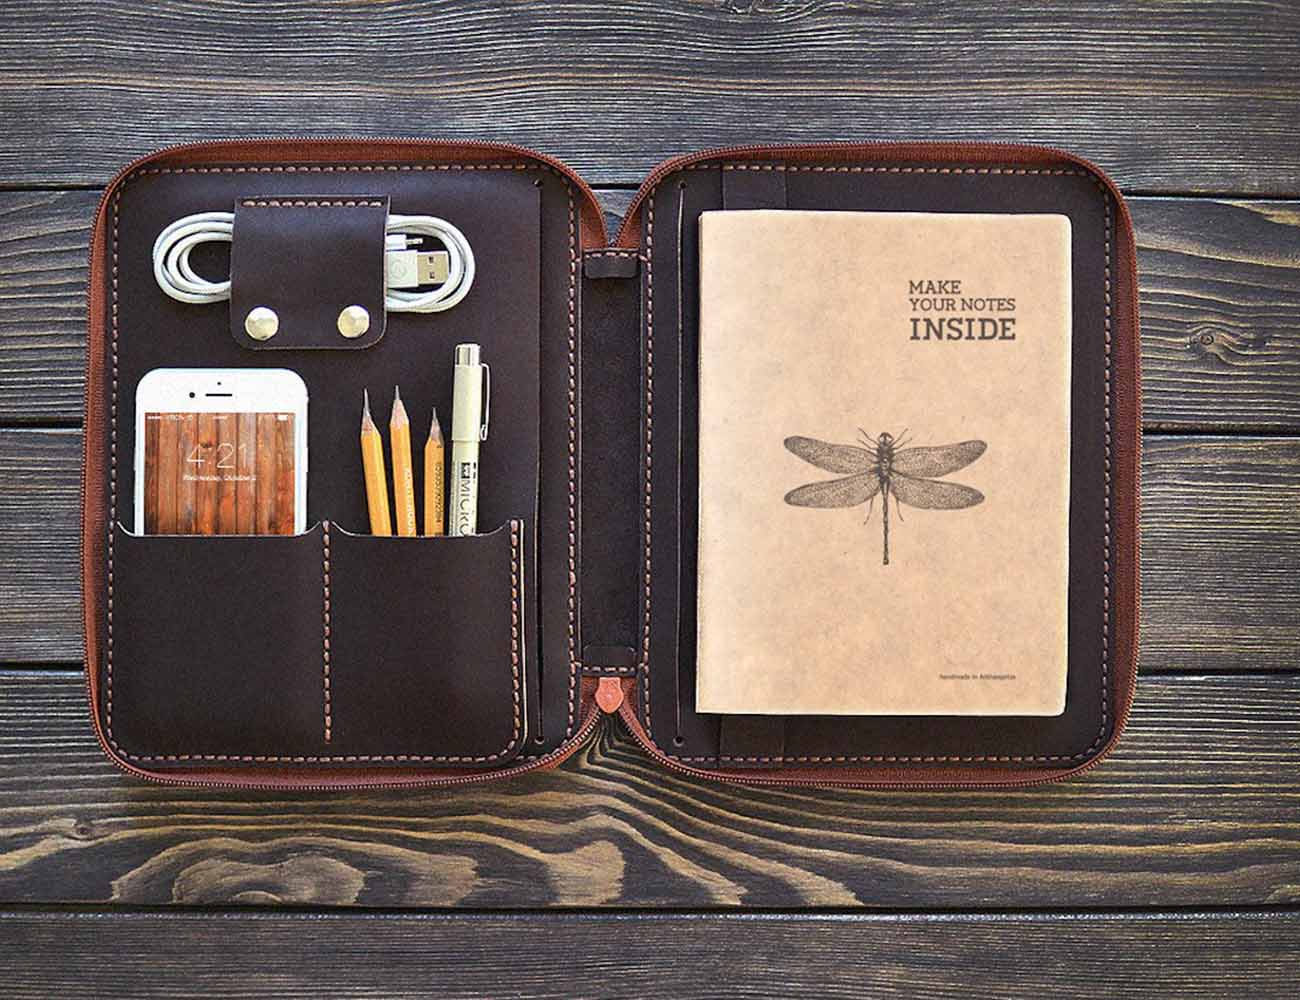 Leather+IPad+Mini+Folio+By+InSide